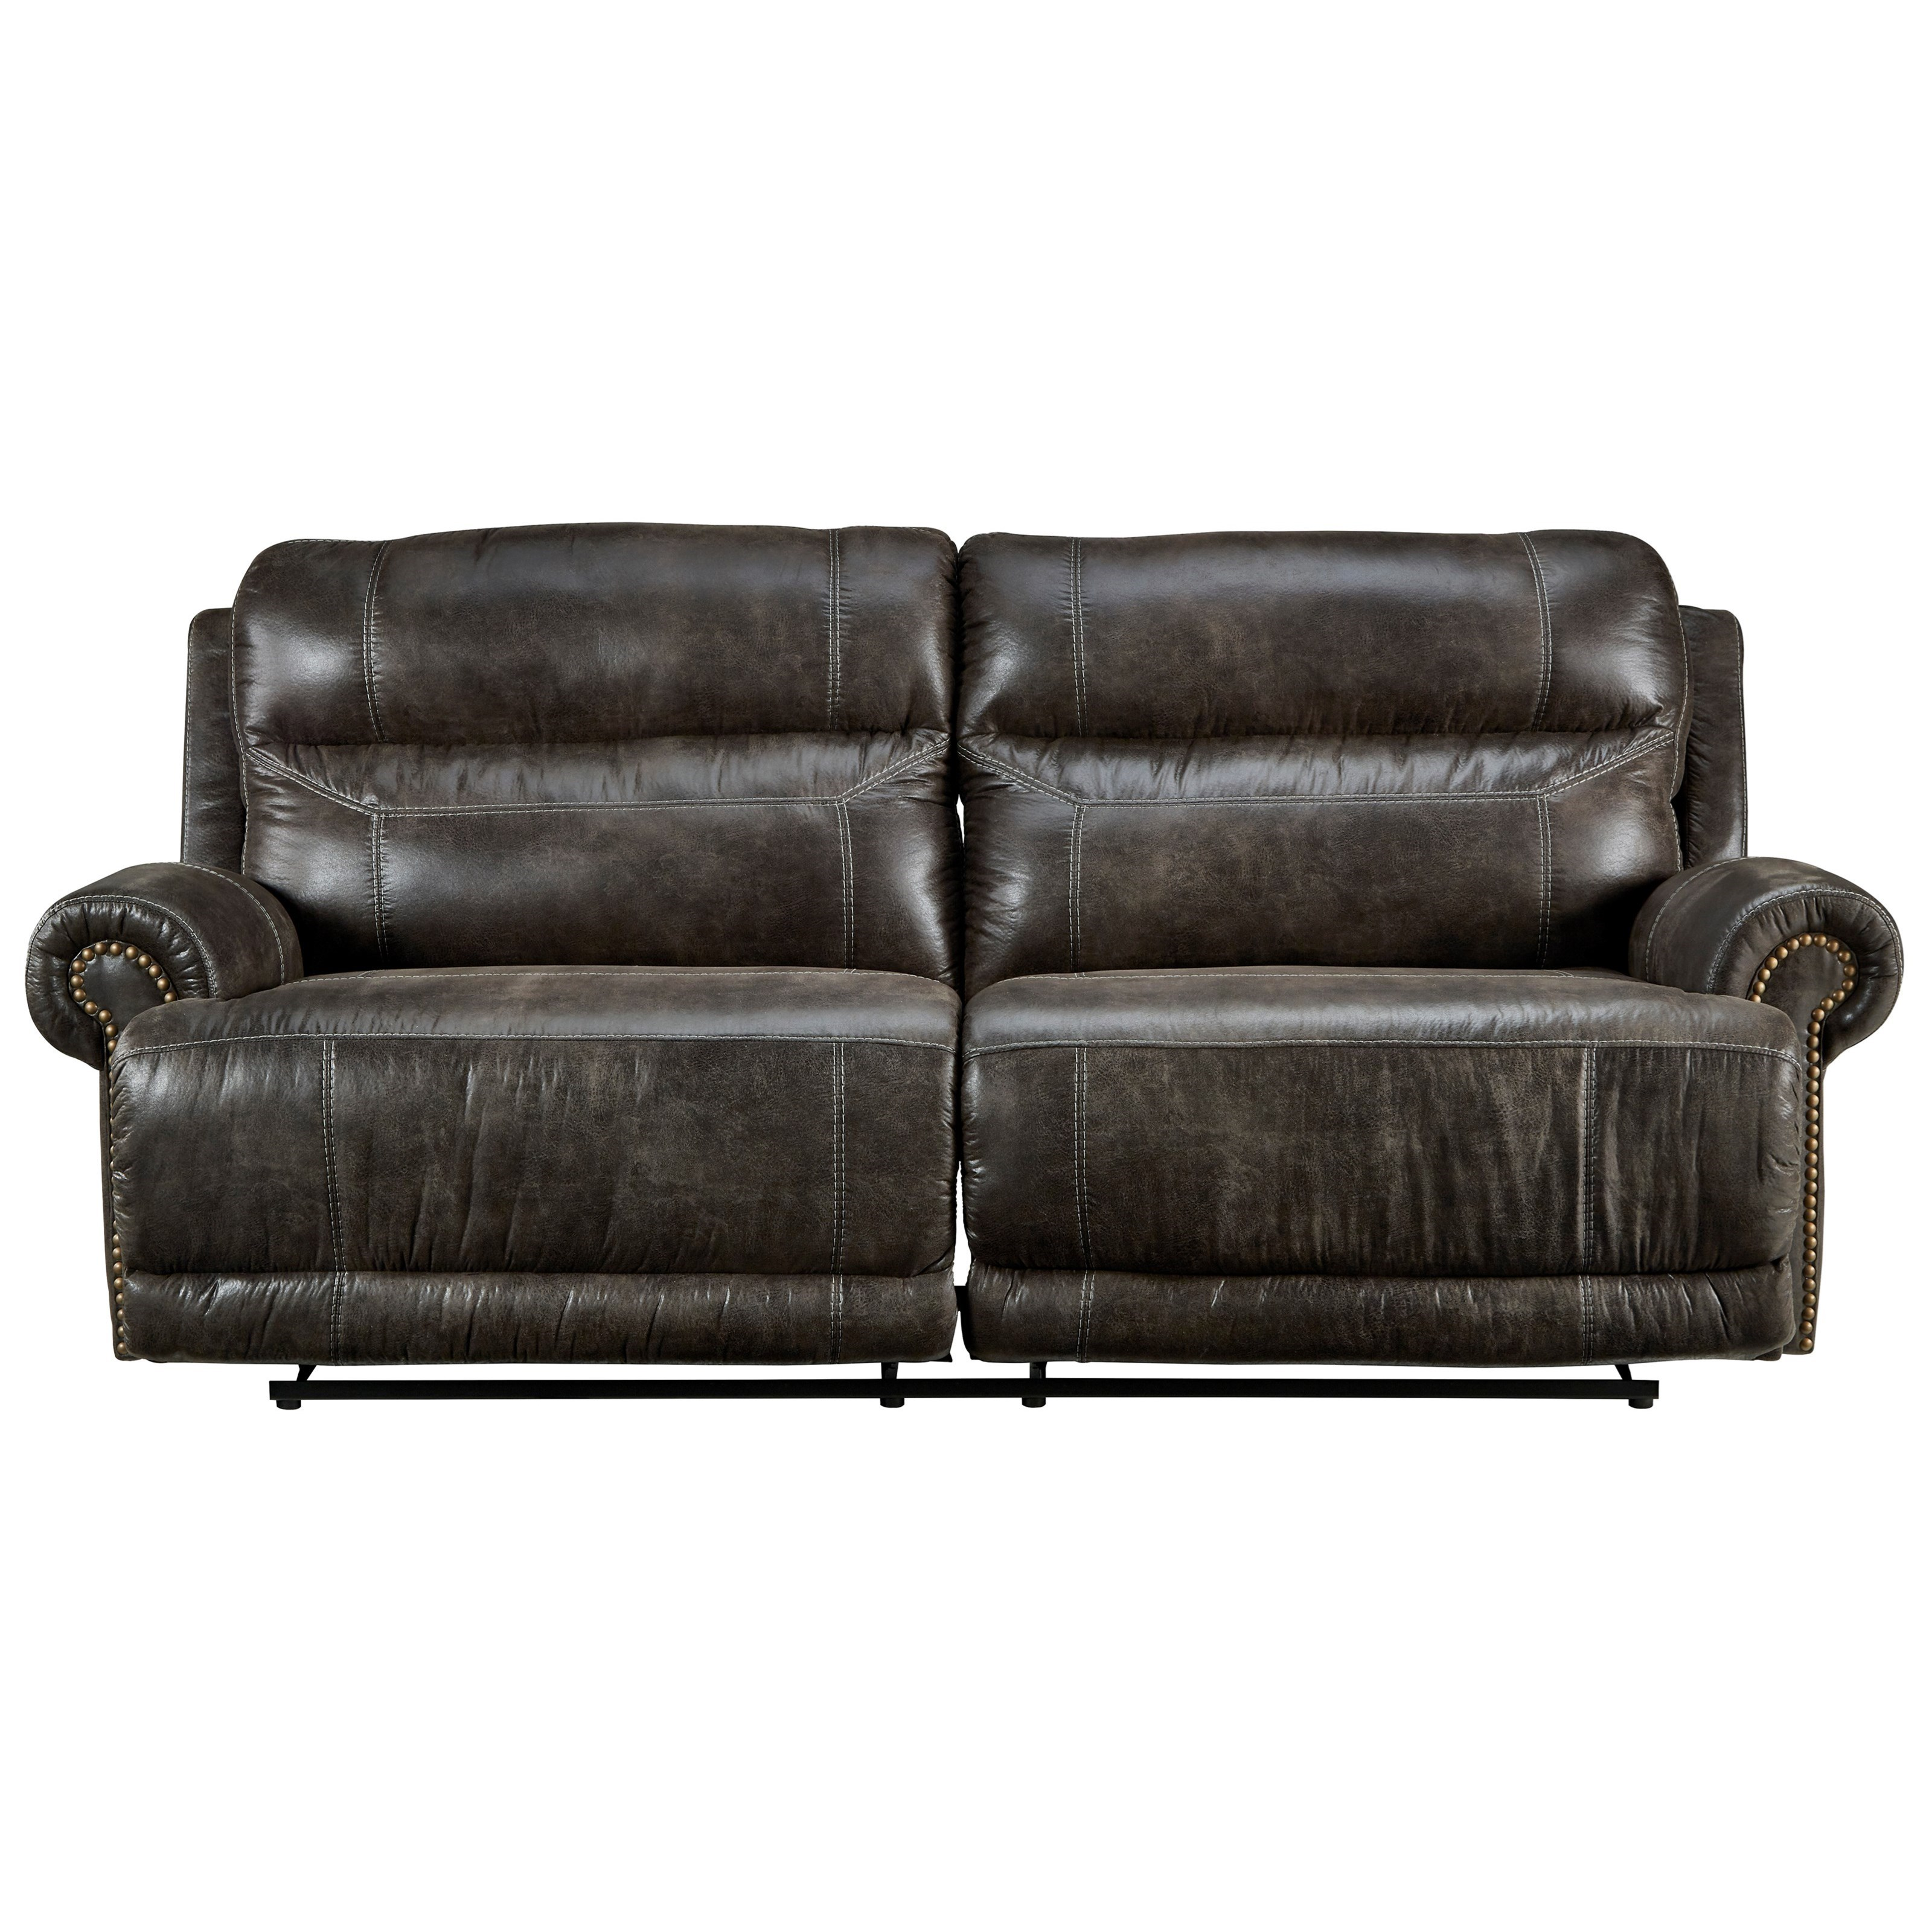 Grearview Power Reclining Sofa by Signature Design by Ashley at Sparks HomeStore